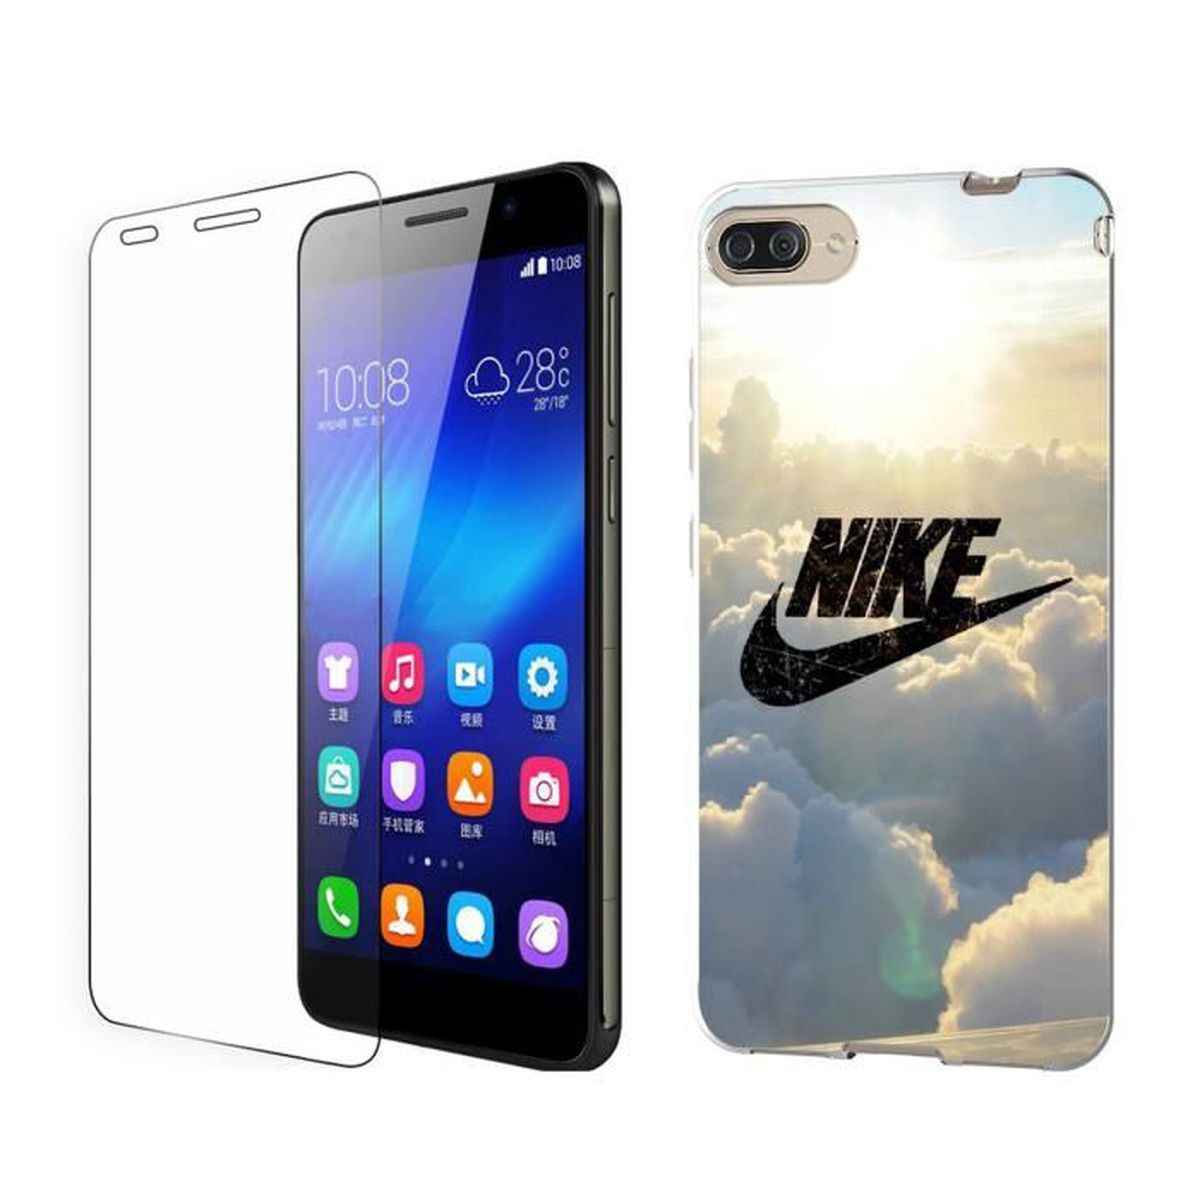 coque nike asus zenfone 4 max chaussures coque nike asus zenfone 4 max soldes coque nike asus. Black Bedroom Furniture Sets. Home Design Ideas